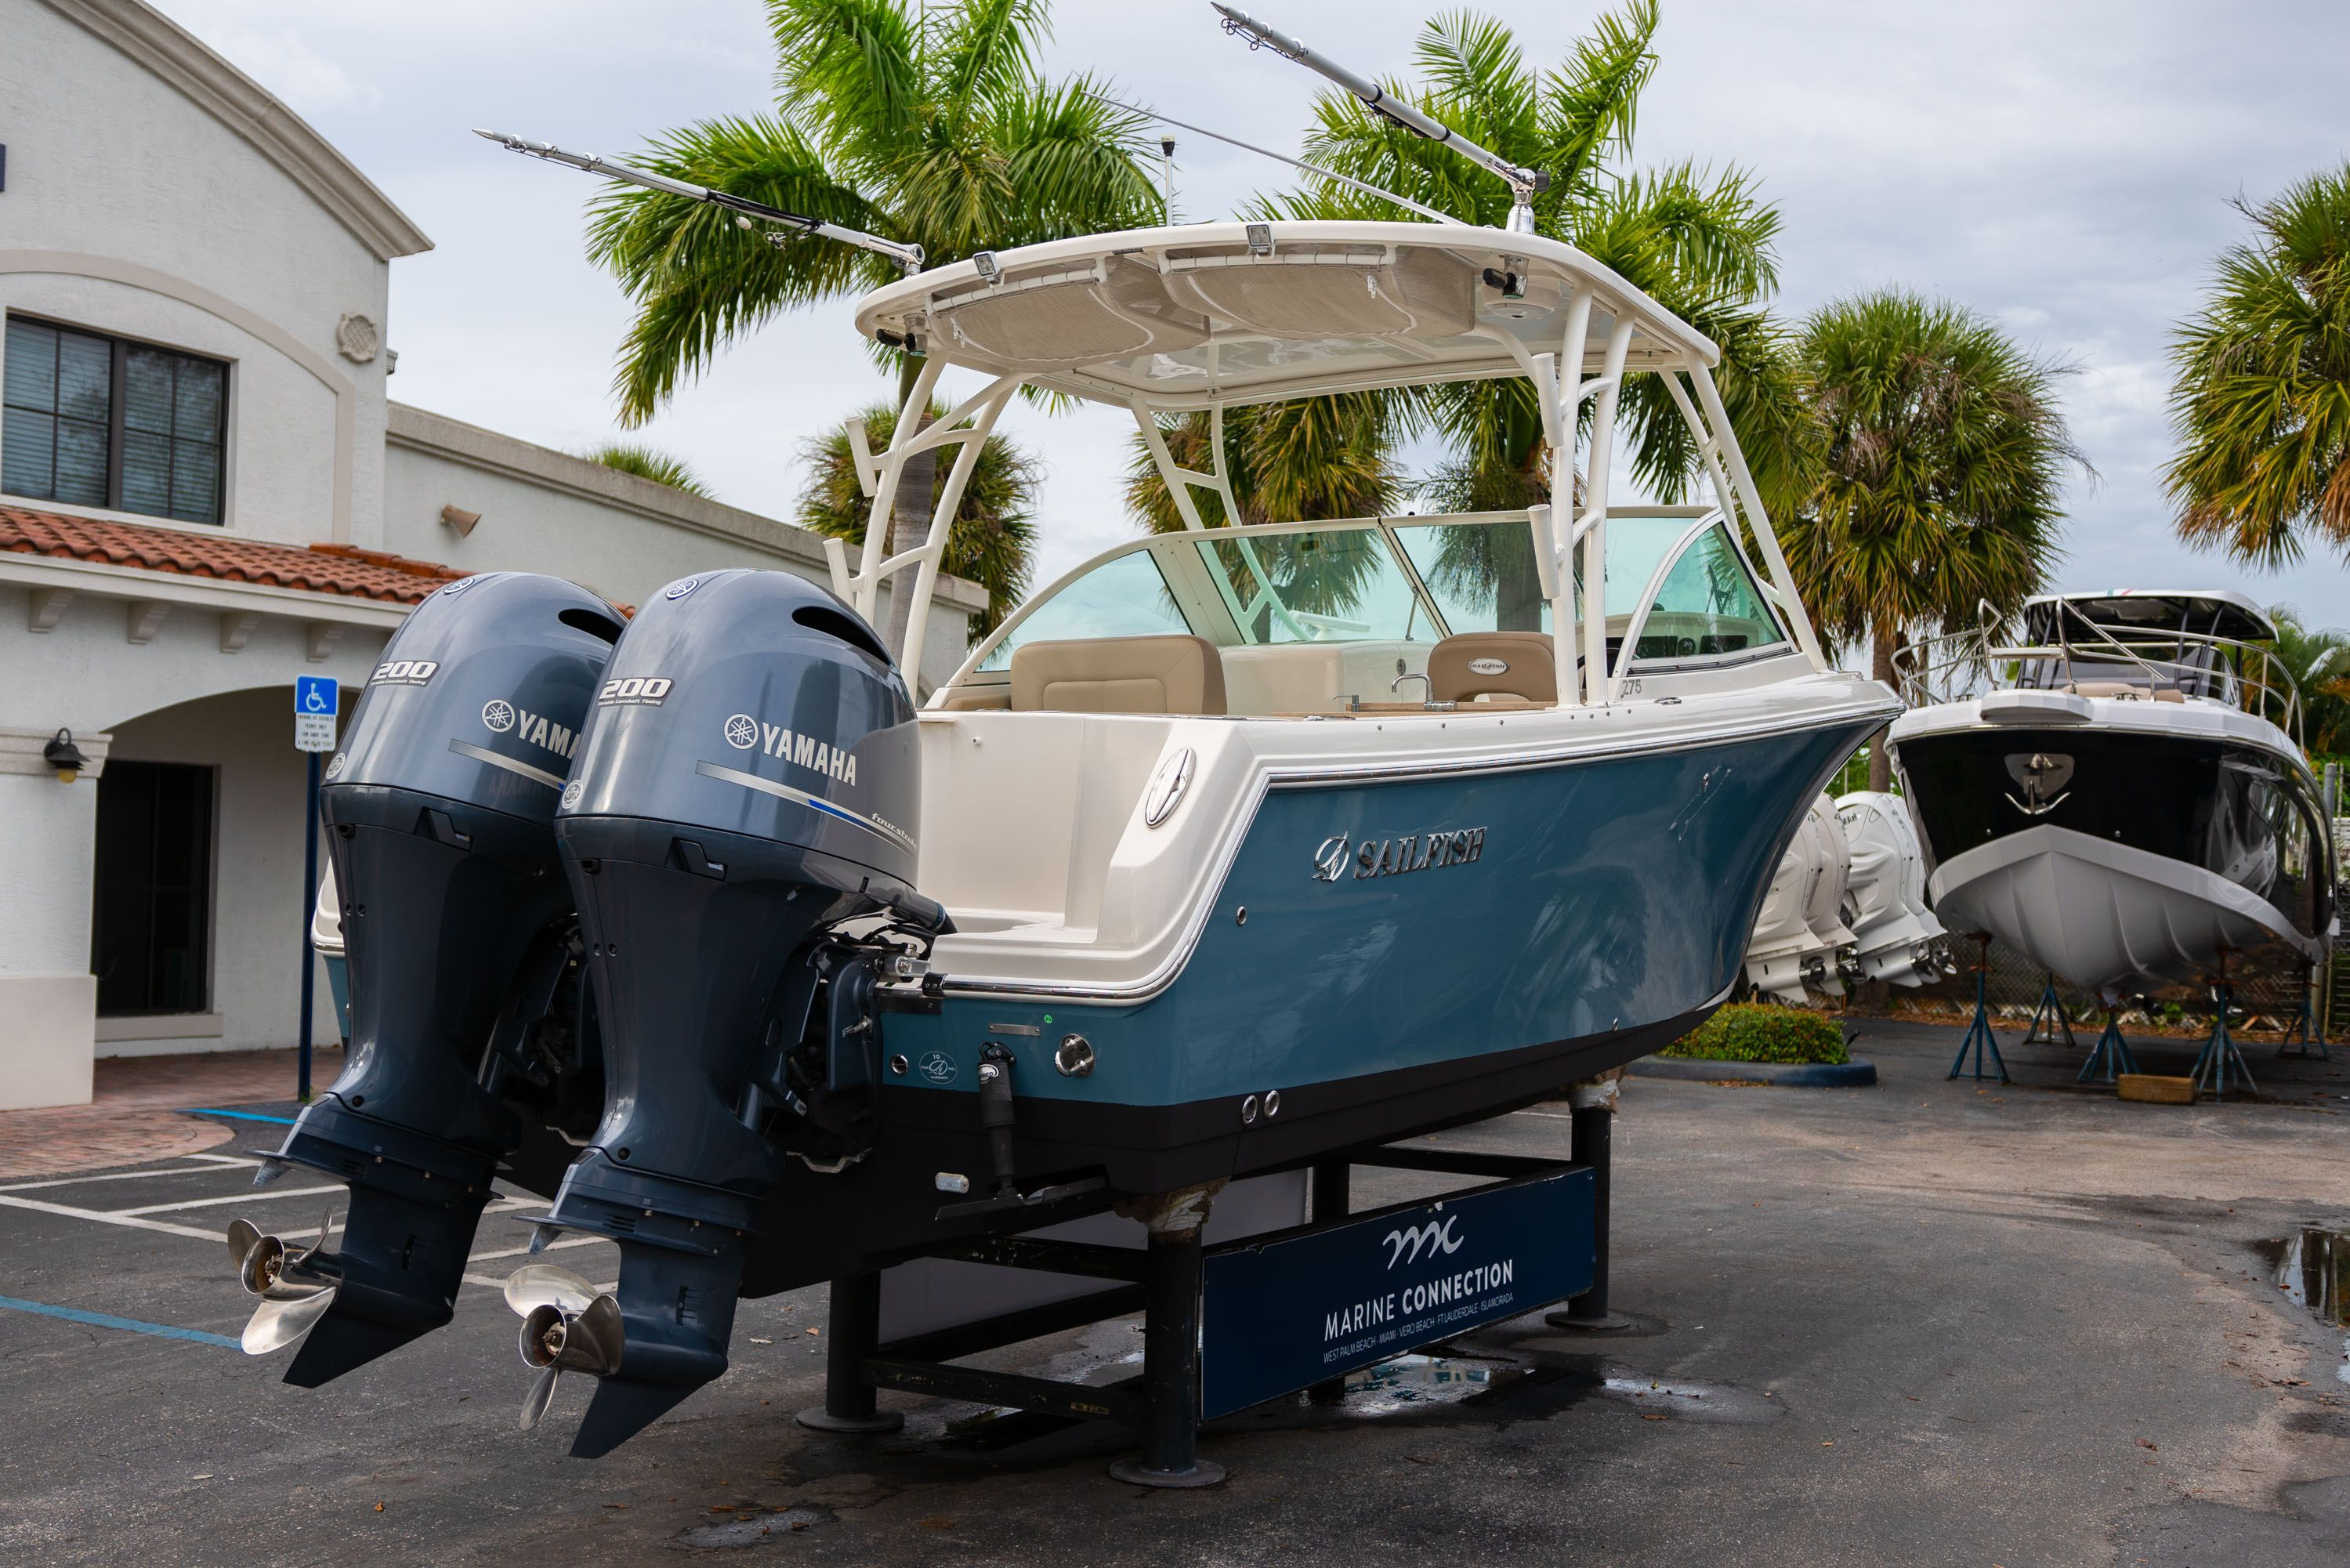 Thumbnail 7 for Used 2017 Sailfish 275 Dual Console boat for sale in West Palm Beach, FL